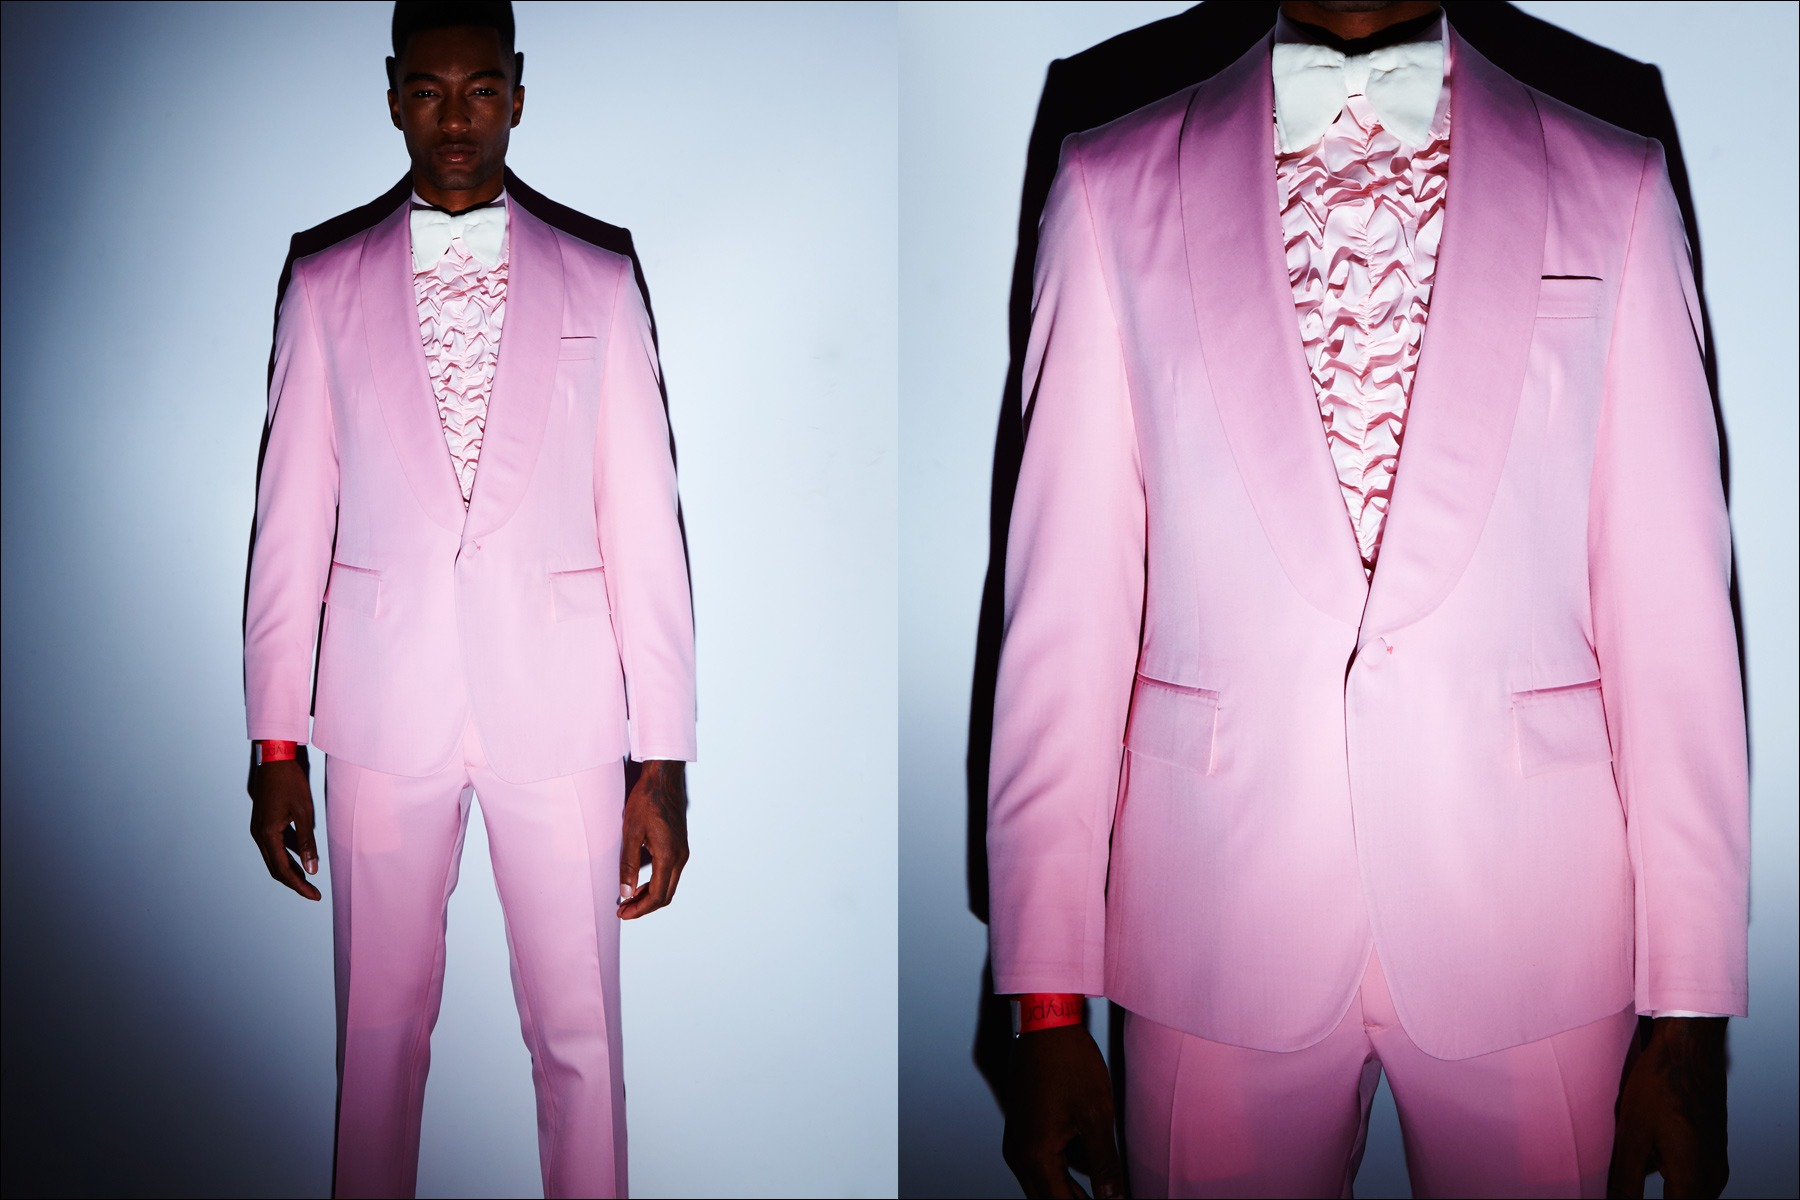 A pink pastel tuxedo from the David Hart Fall/Winter 2017 menswear collection. Photography by Alexander Thompson for Ponyboy magazine New York.